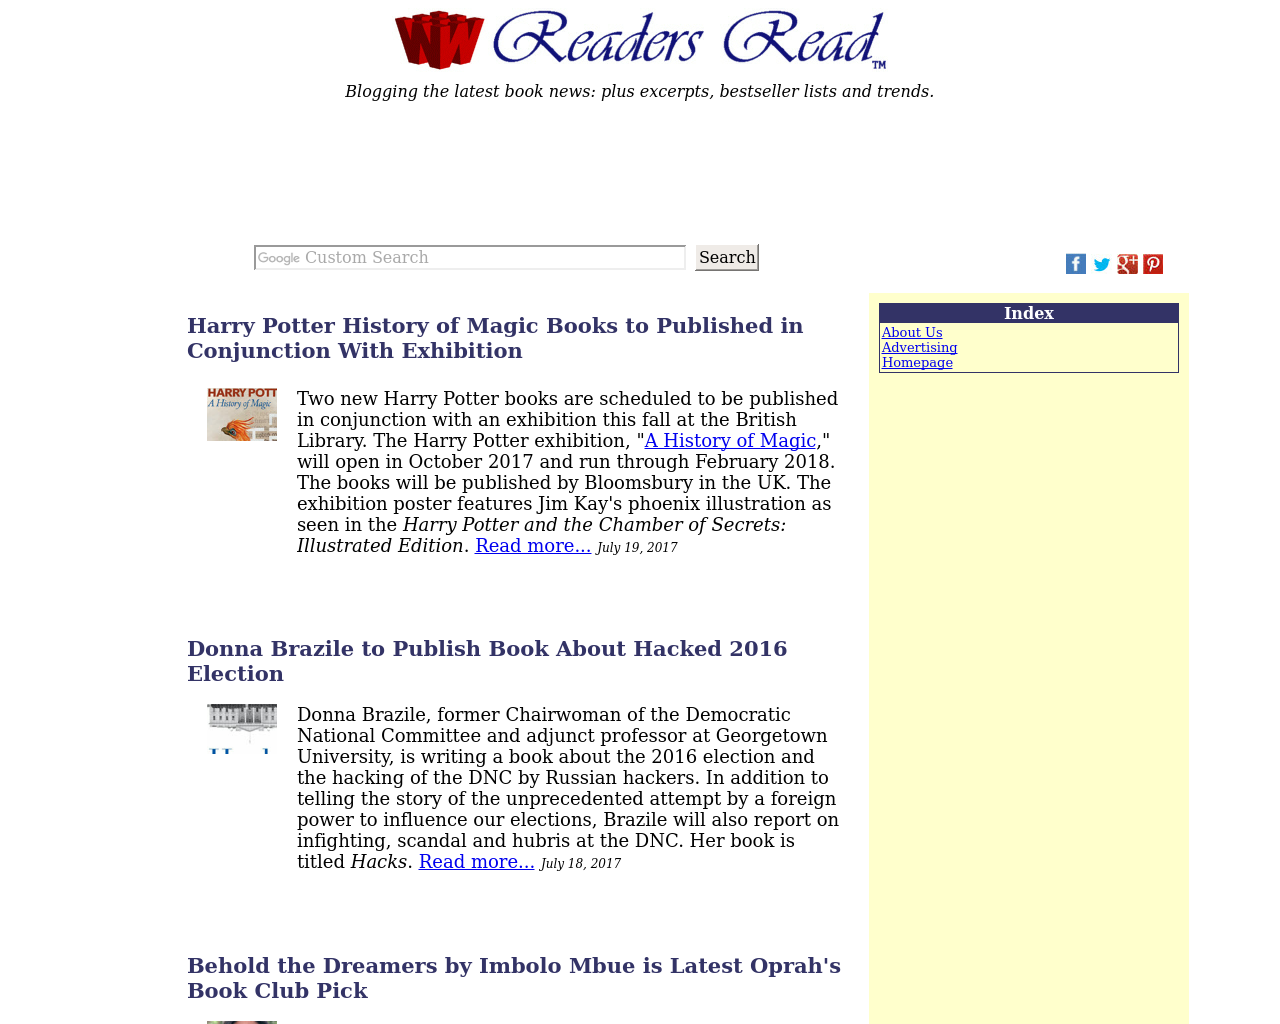 Readers-Read-Advertising-Reviews-Pricing